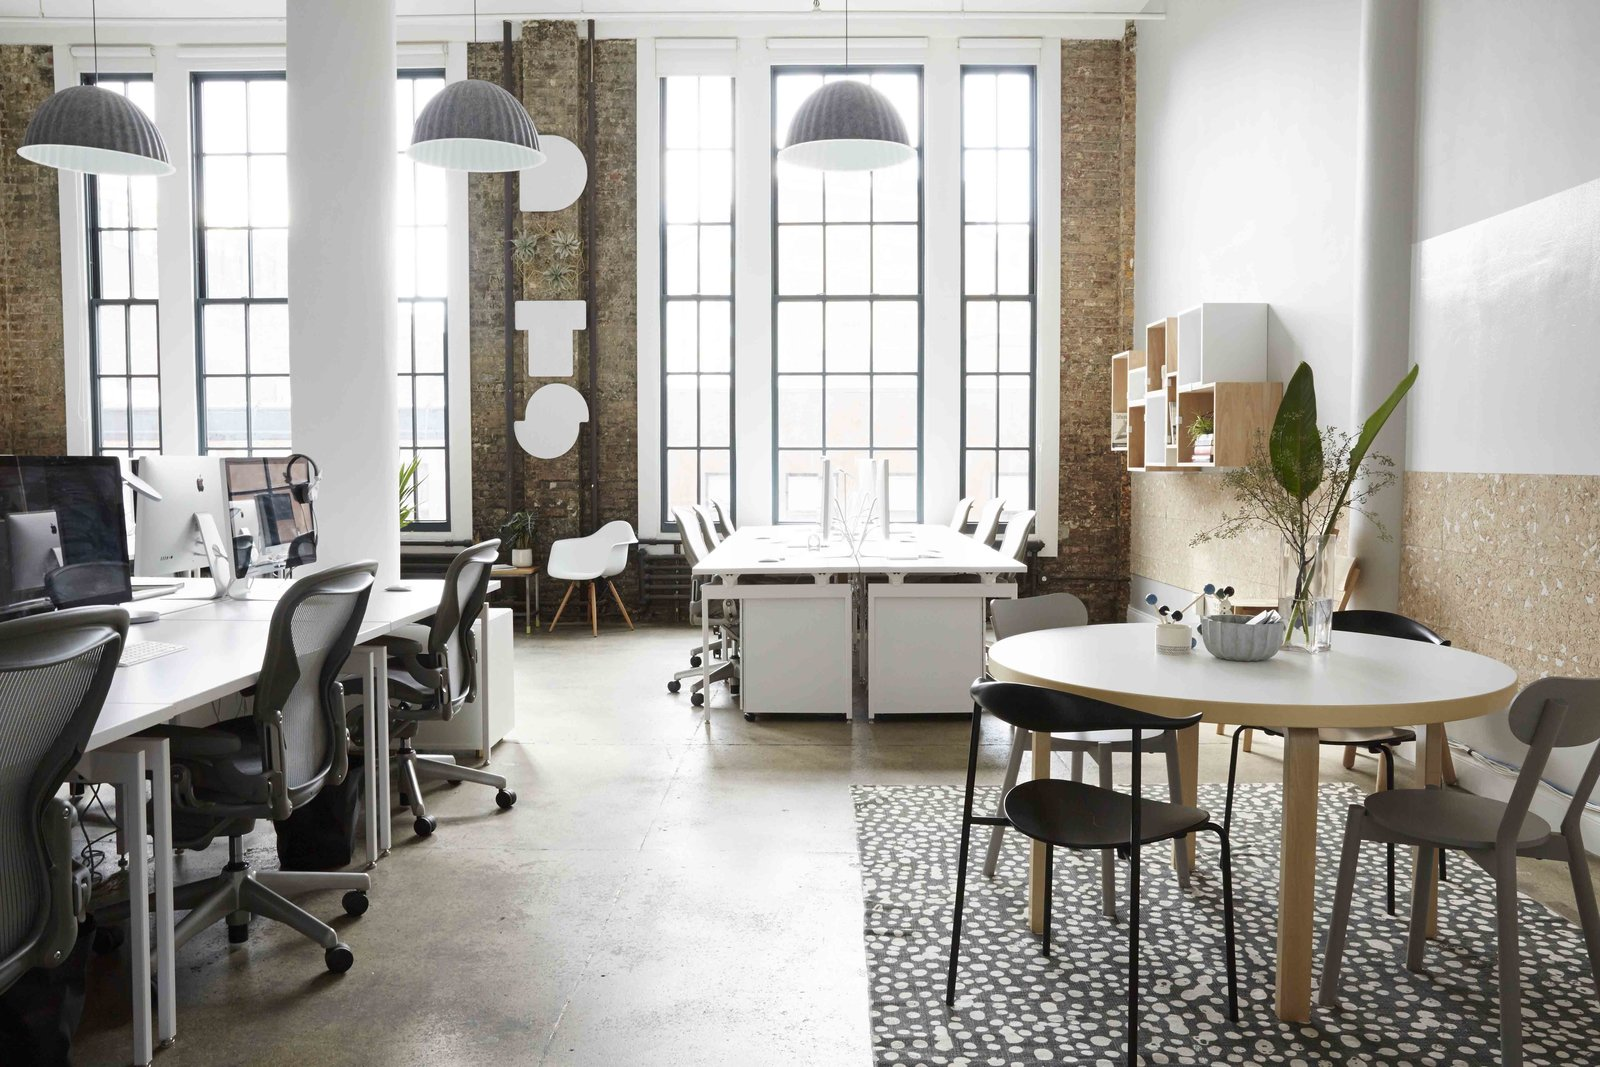 ScandinavianInspired Office Design in NYC Collection of 6